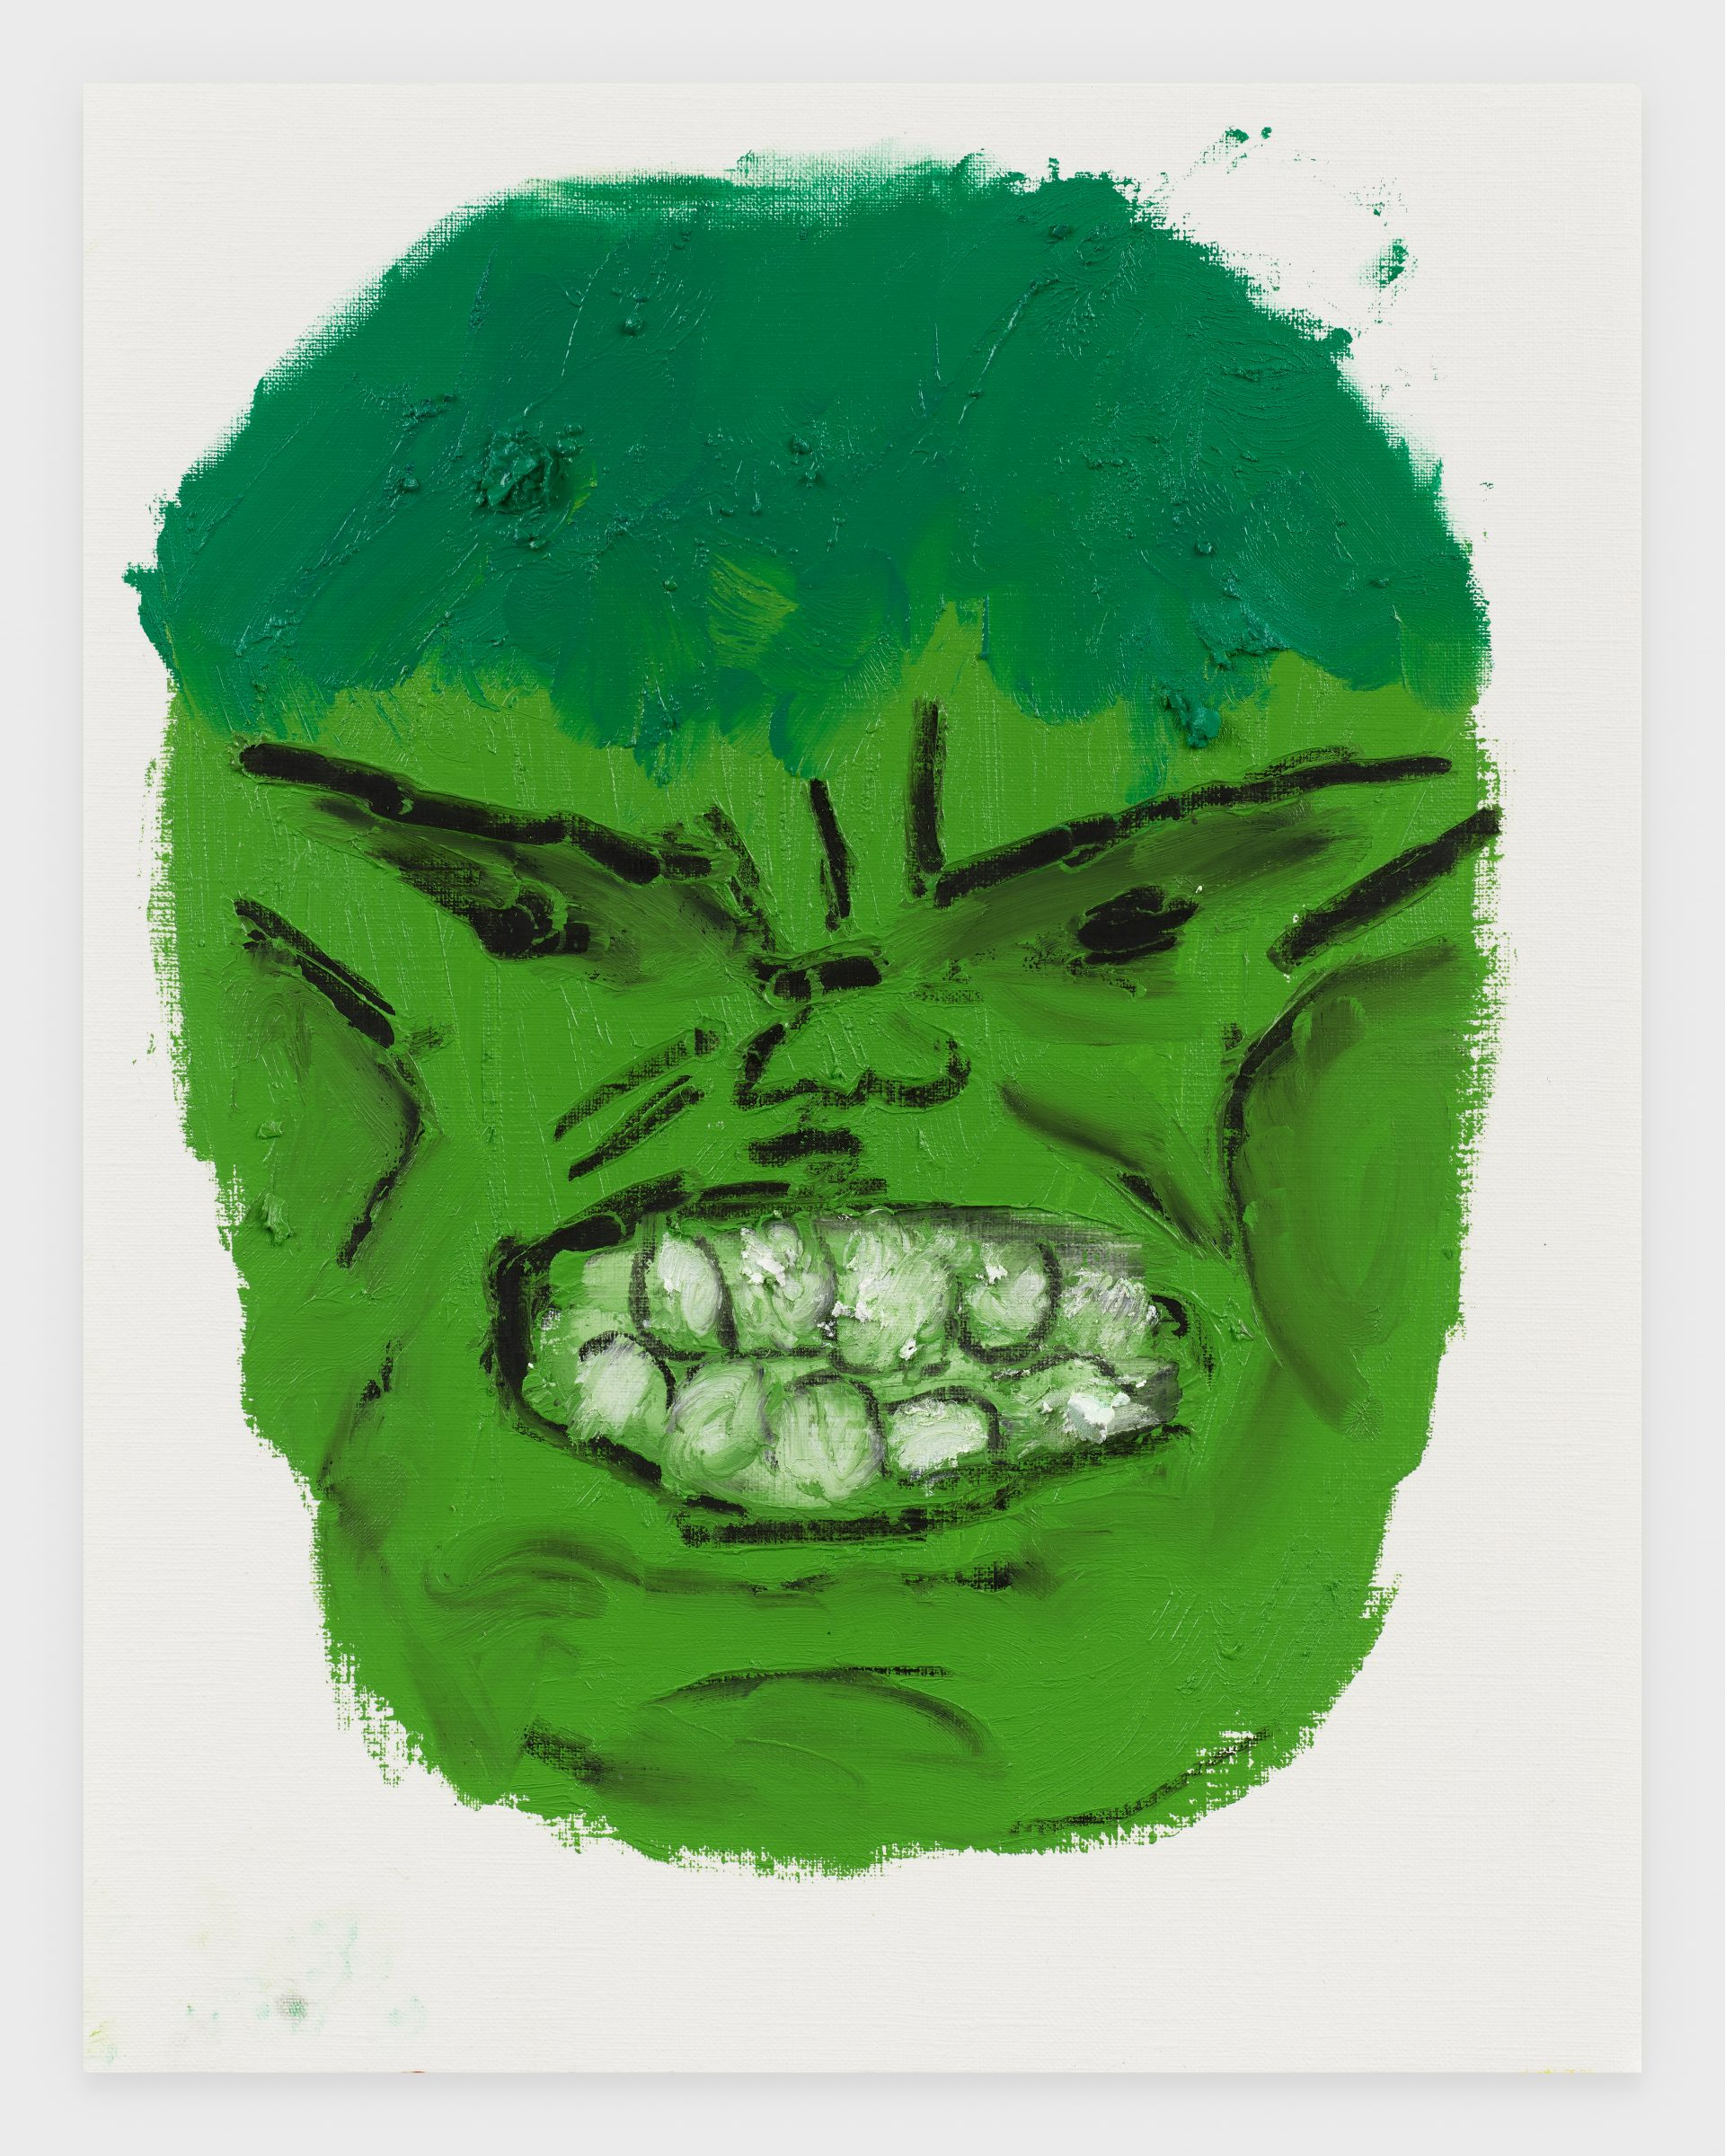 Incredible Hulk, 2020, Oil stick on archival paper, 11 x 14 inches